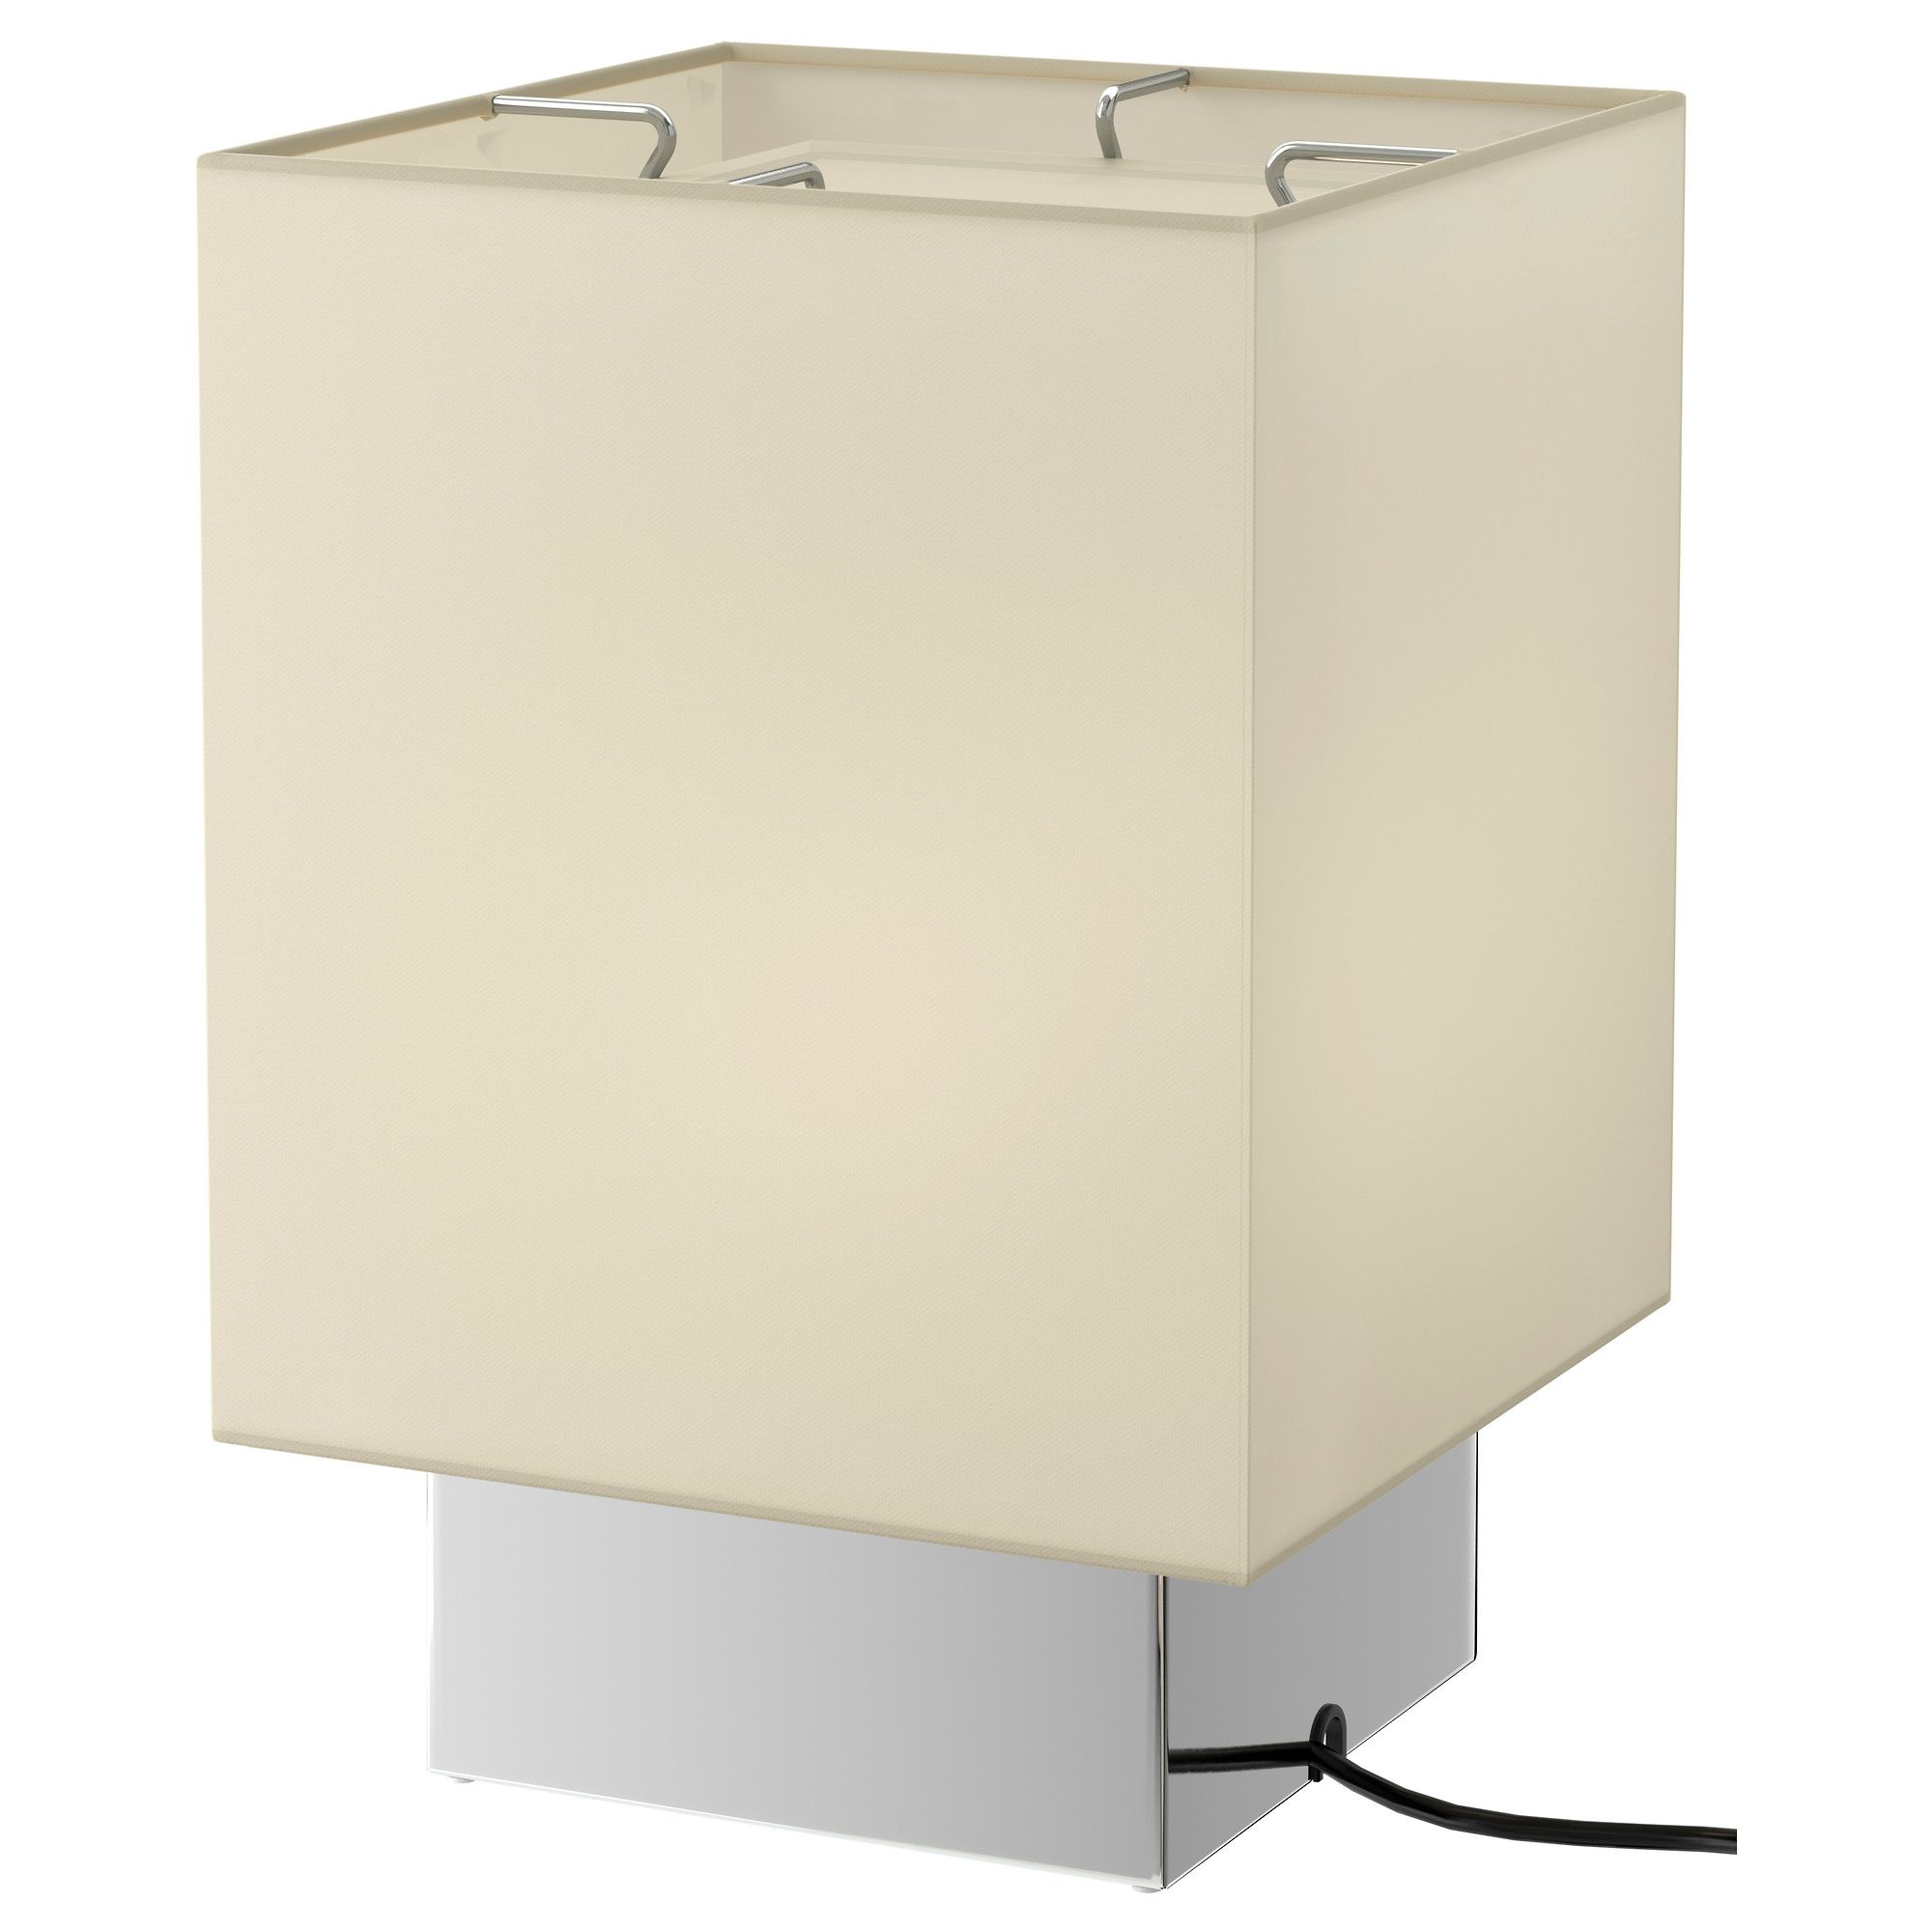 SÅNGEN Table Lamp   IKEA, $24.99   To Be Placed At Right End Of Dresser